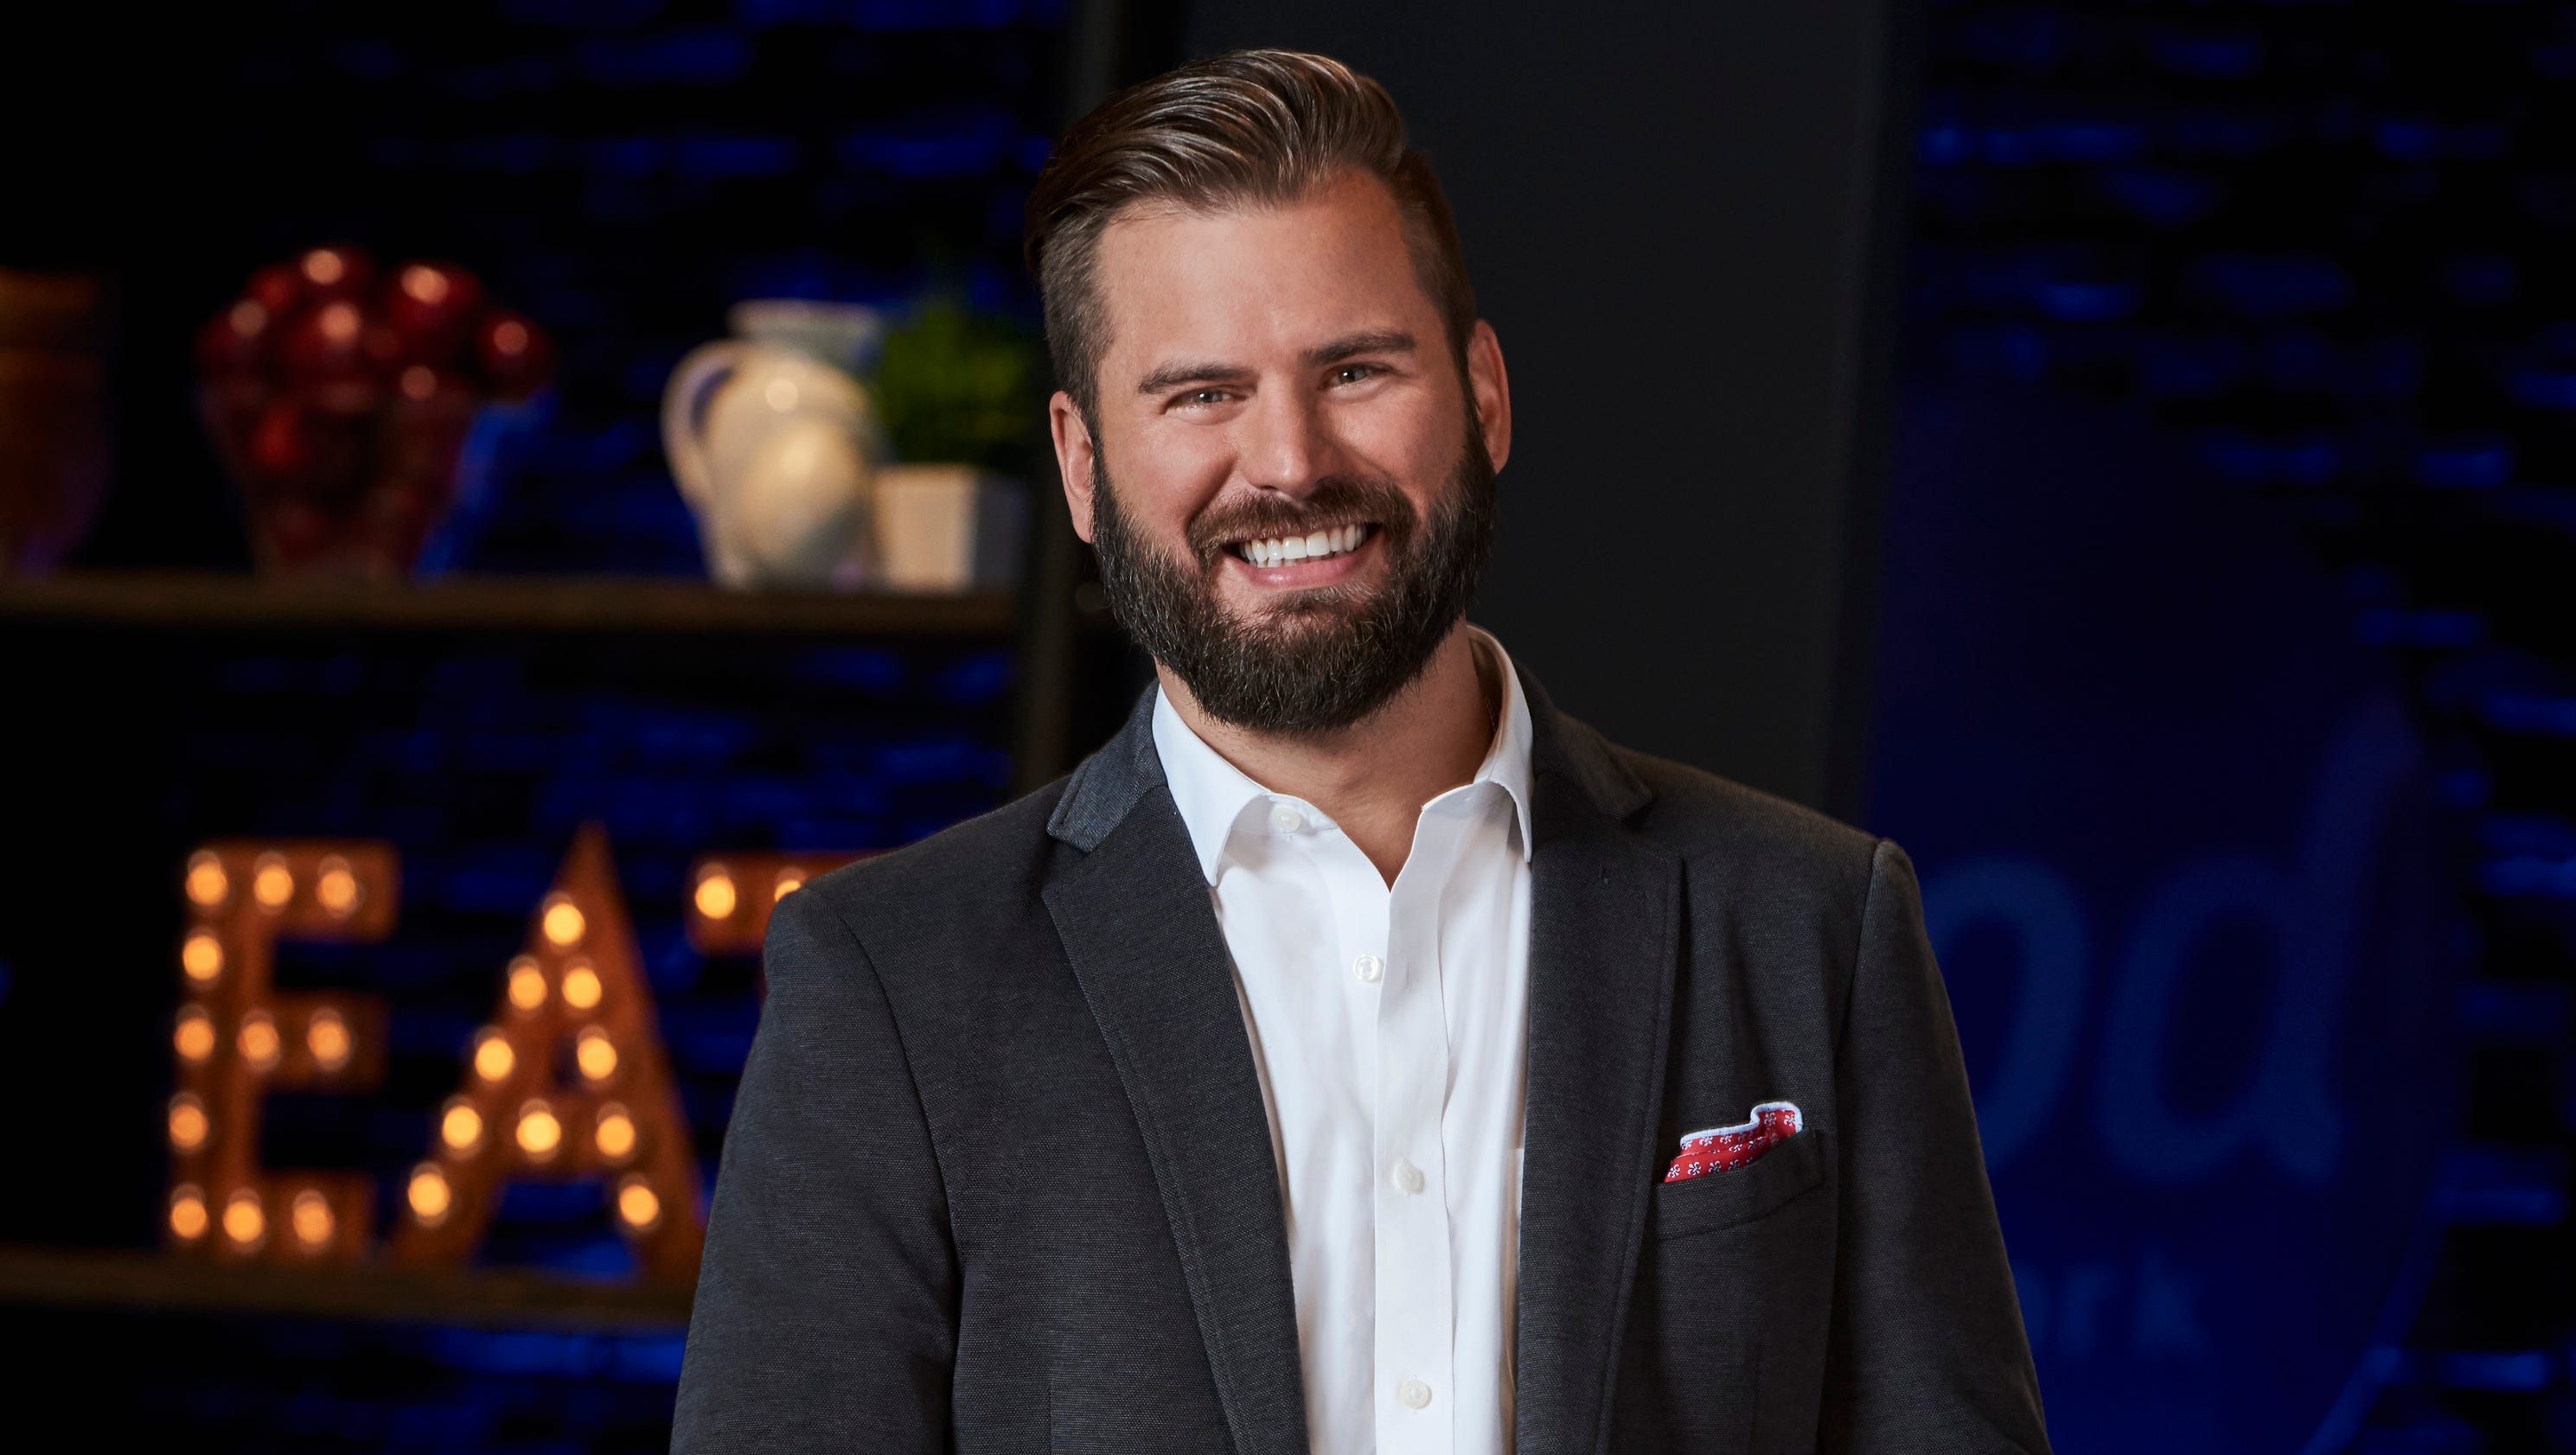 The Next Food Network Star Local Chef To Compete On 'food Network Star'